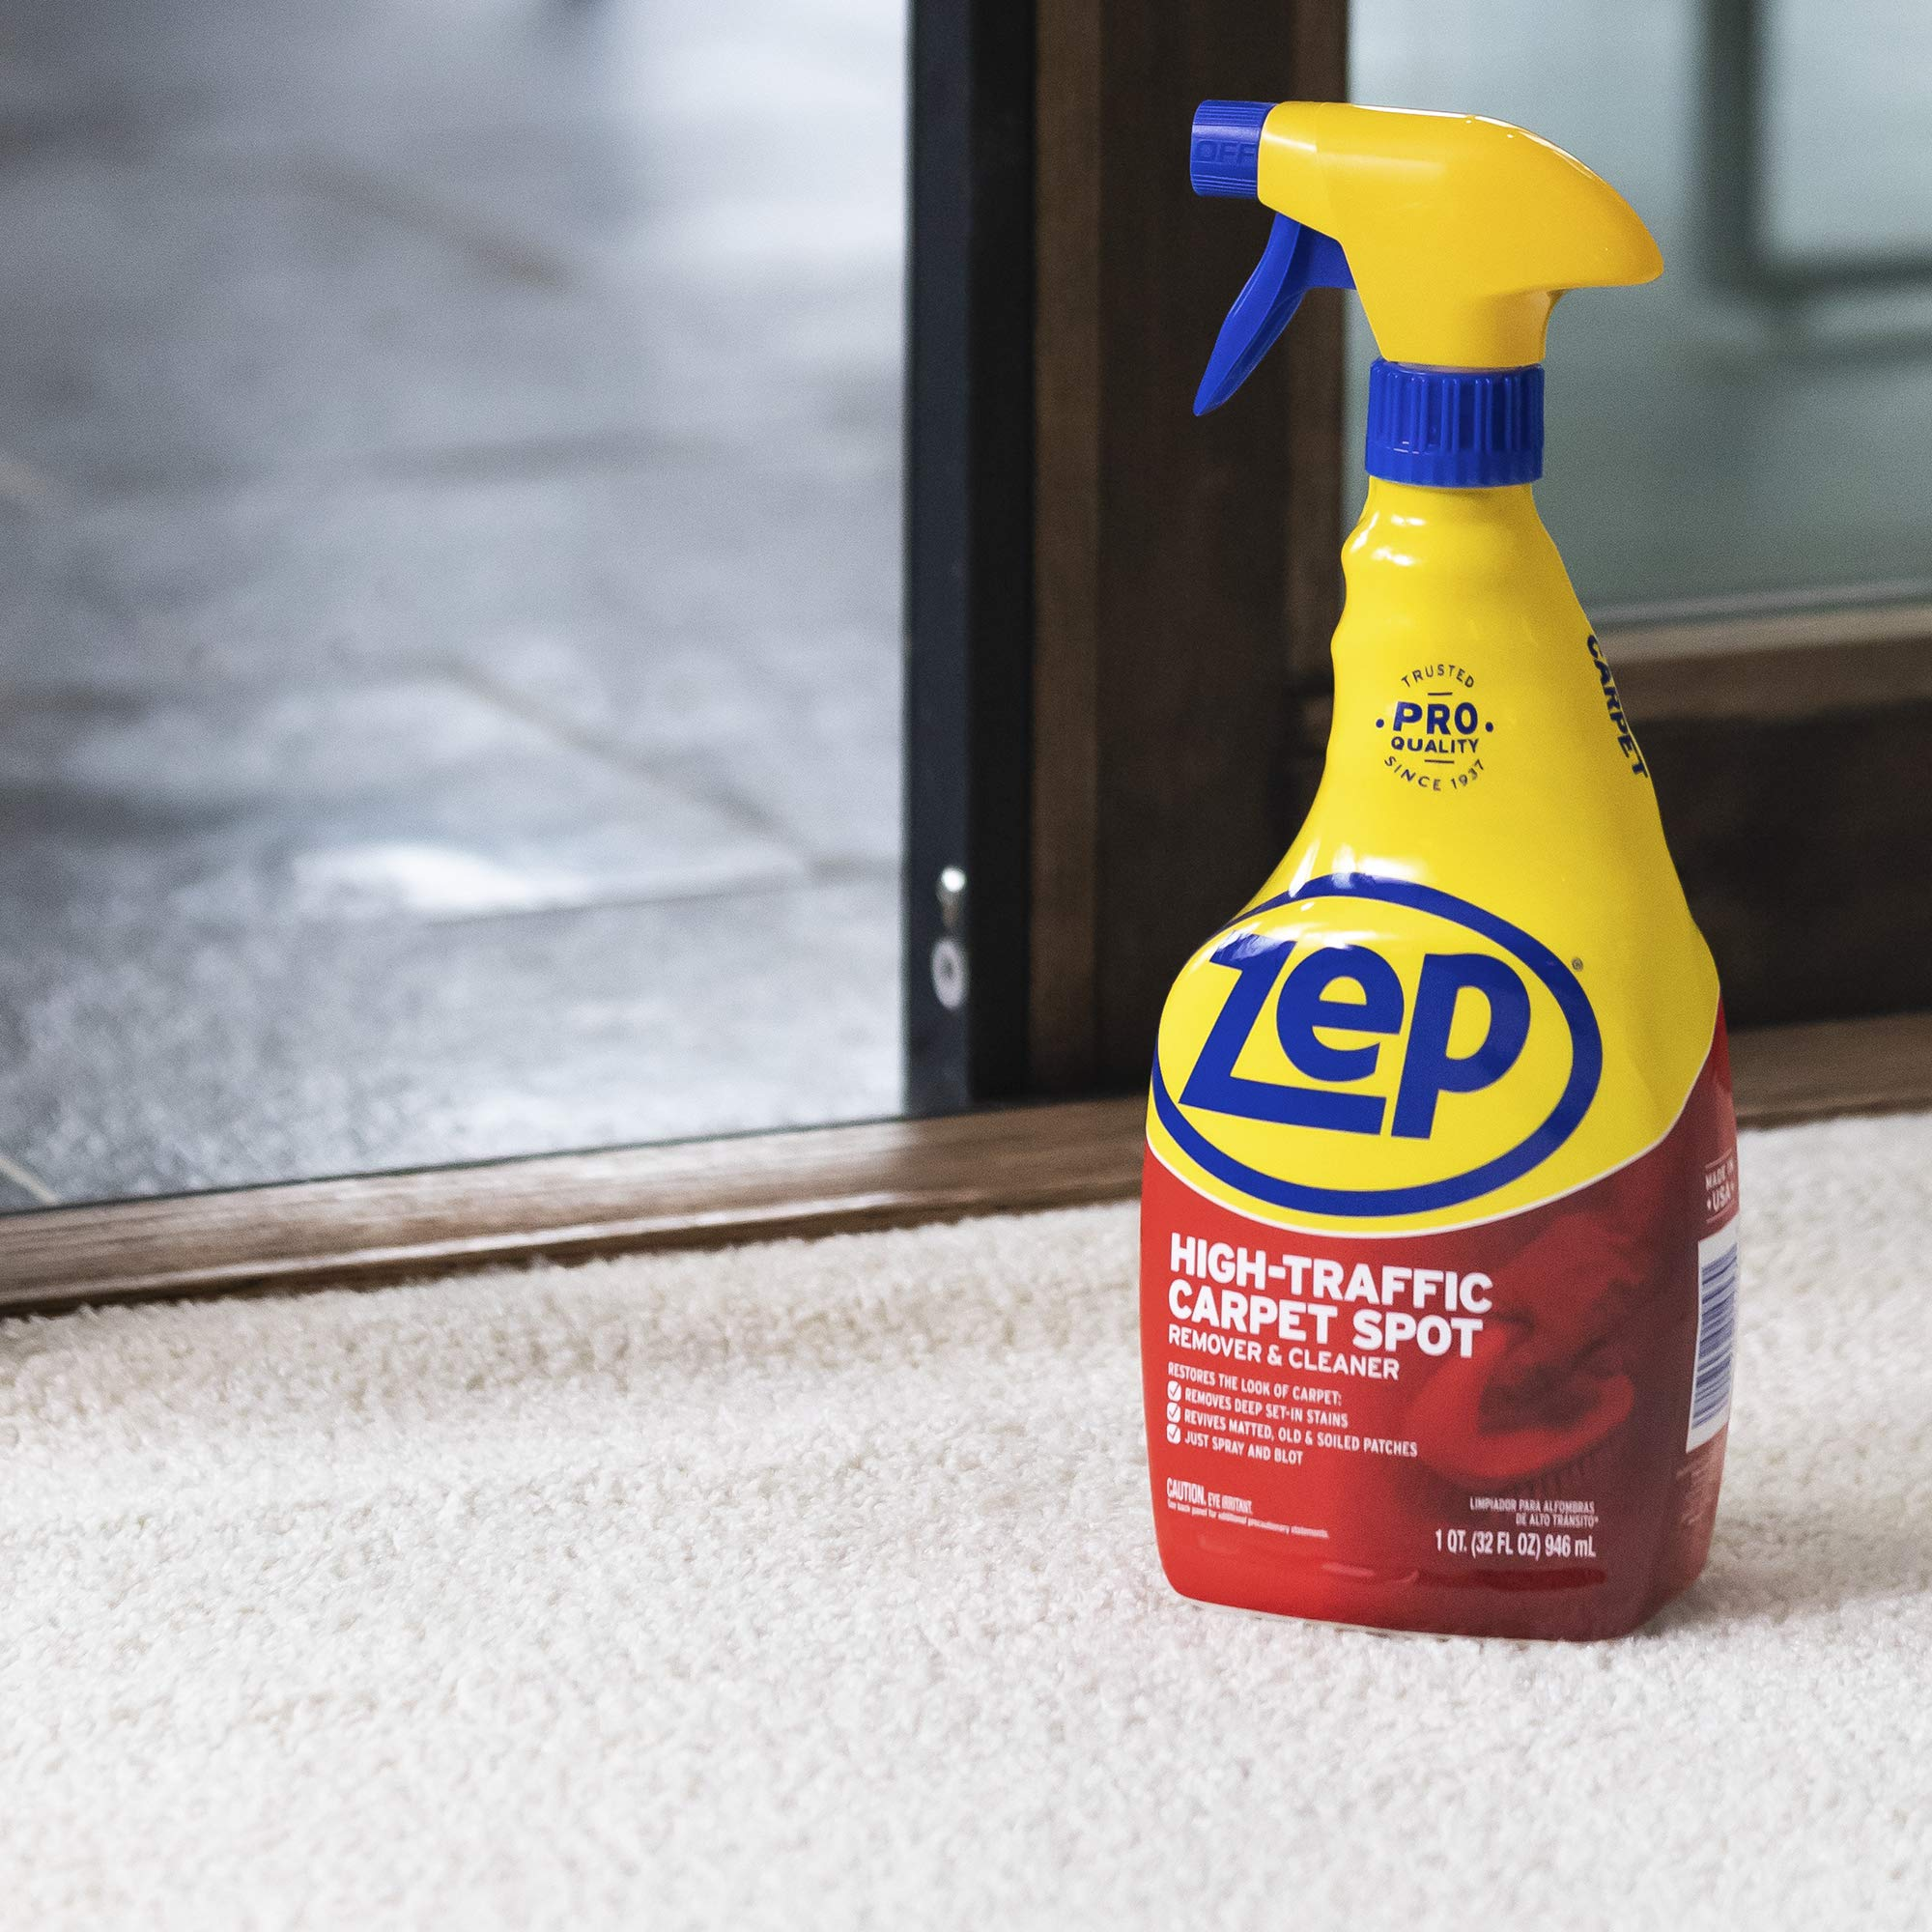 ZEP High Traffic Carpet Cleaner 32 Ounces ZUHTC32 (Case of 12) by Zep (Image #6)